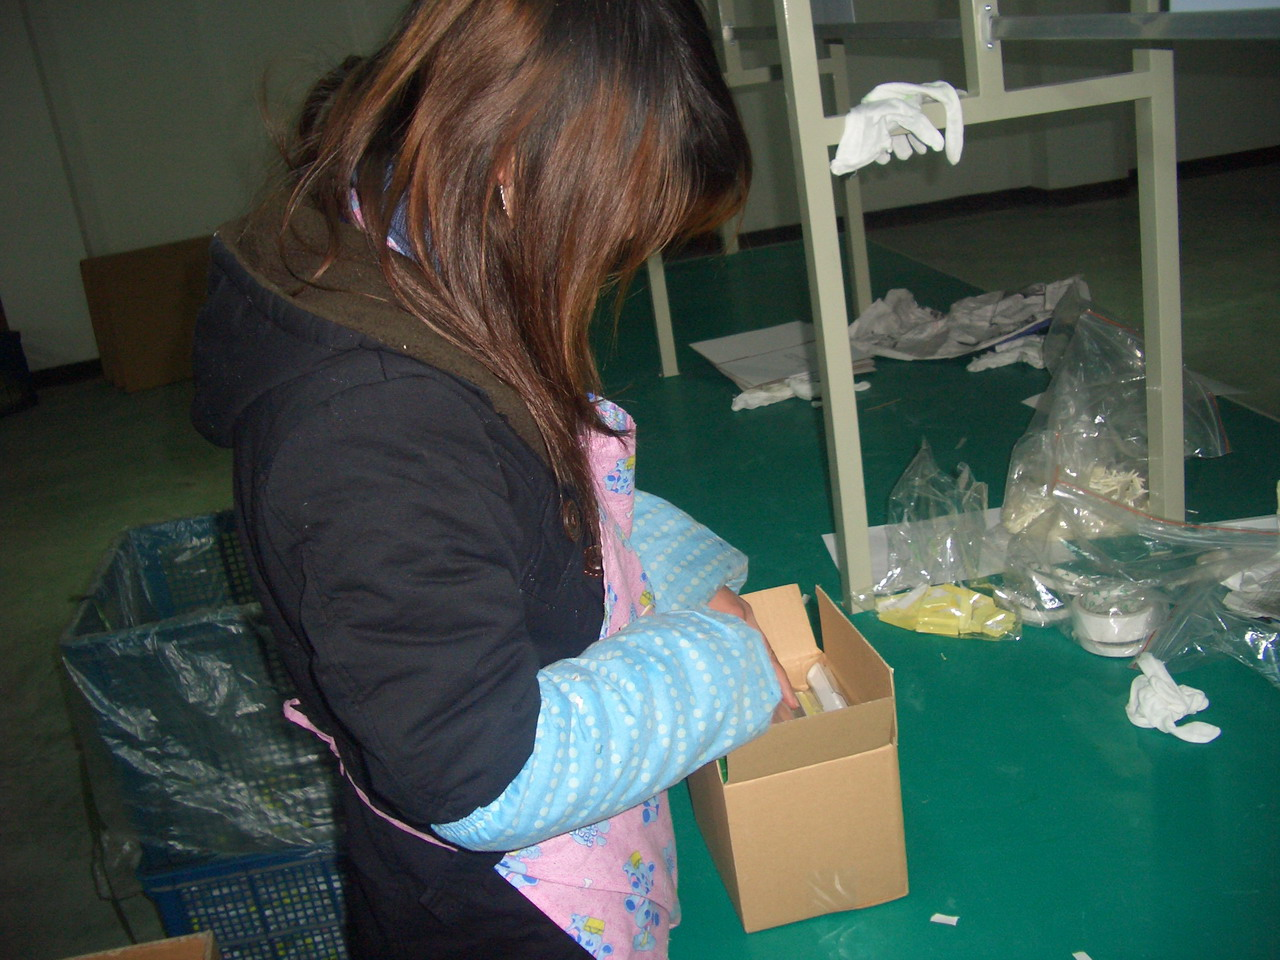 Whenever you communicate with your China factory, use open ears and open mind to improve overseas production